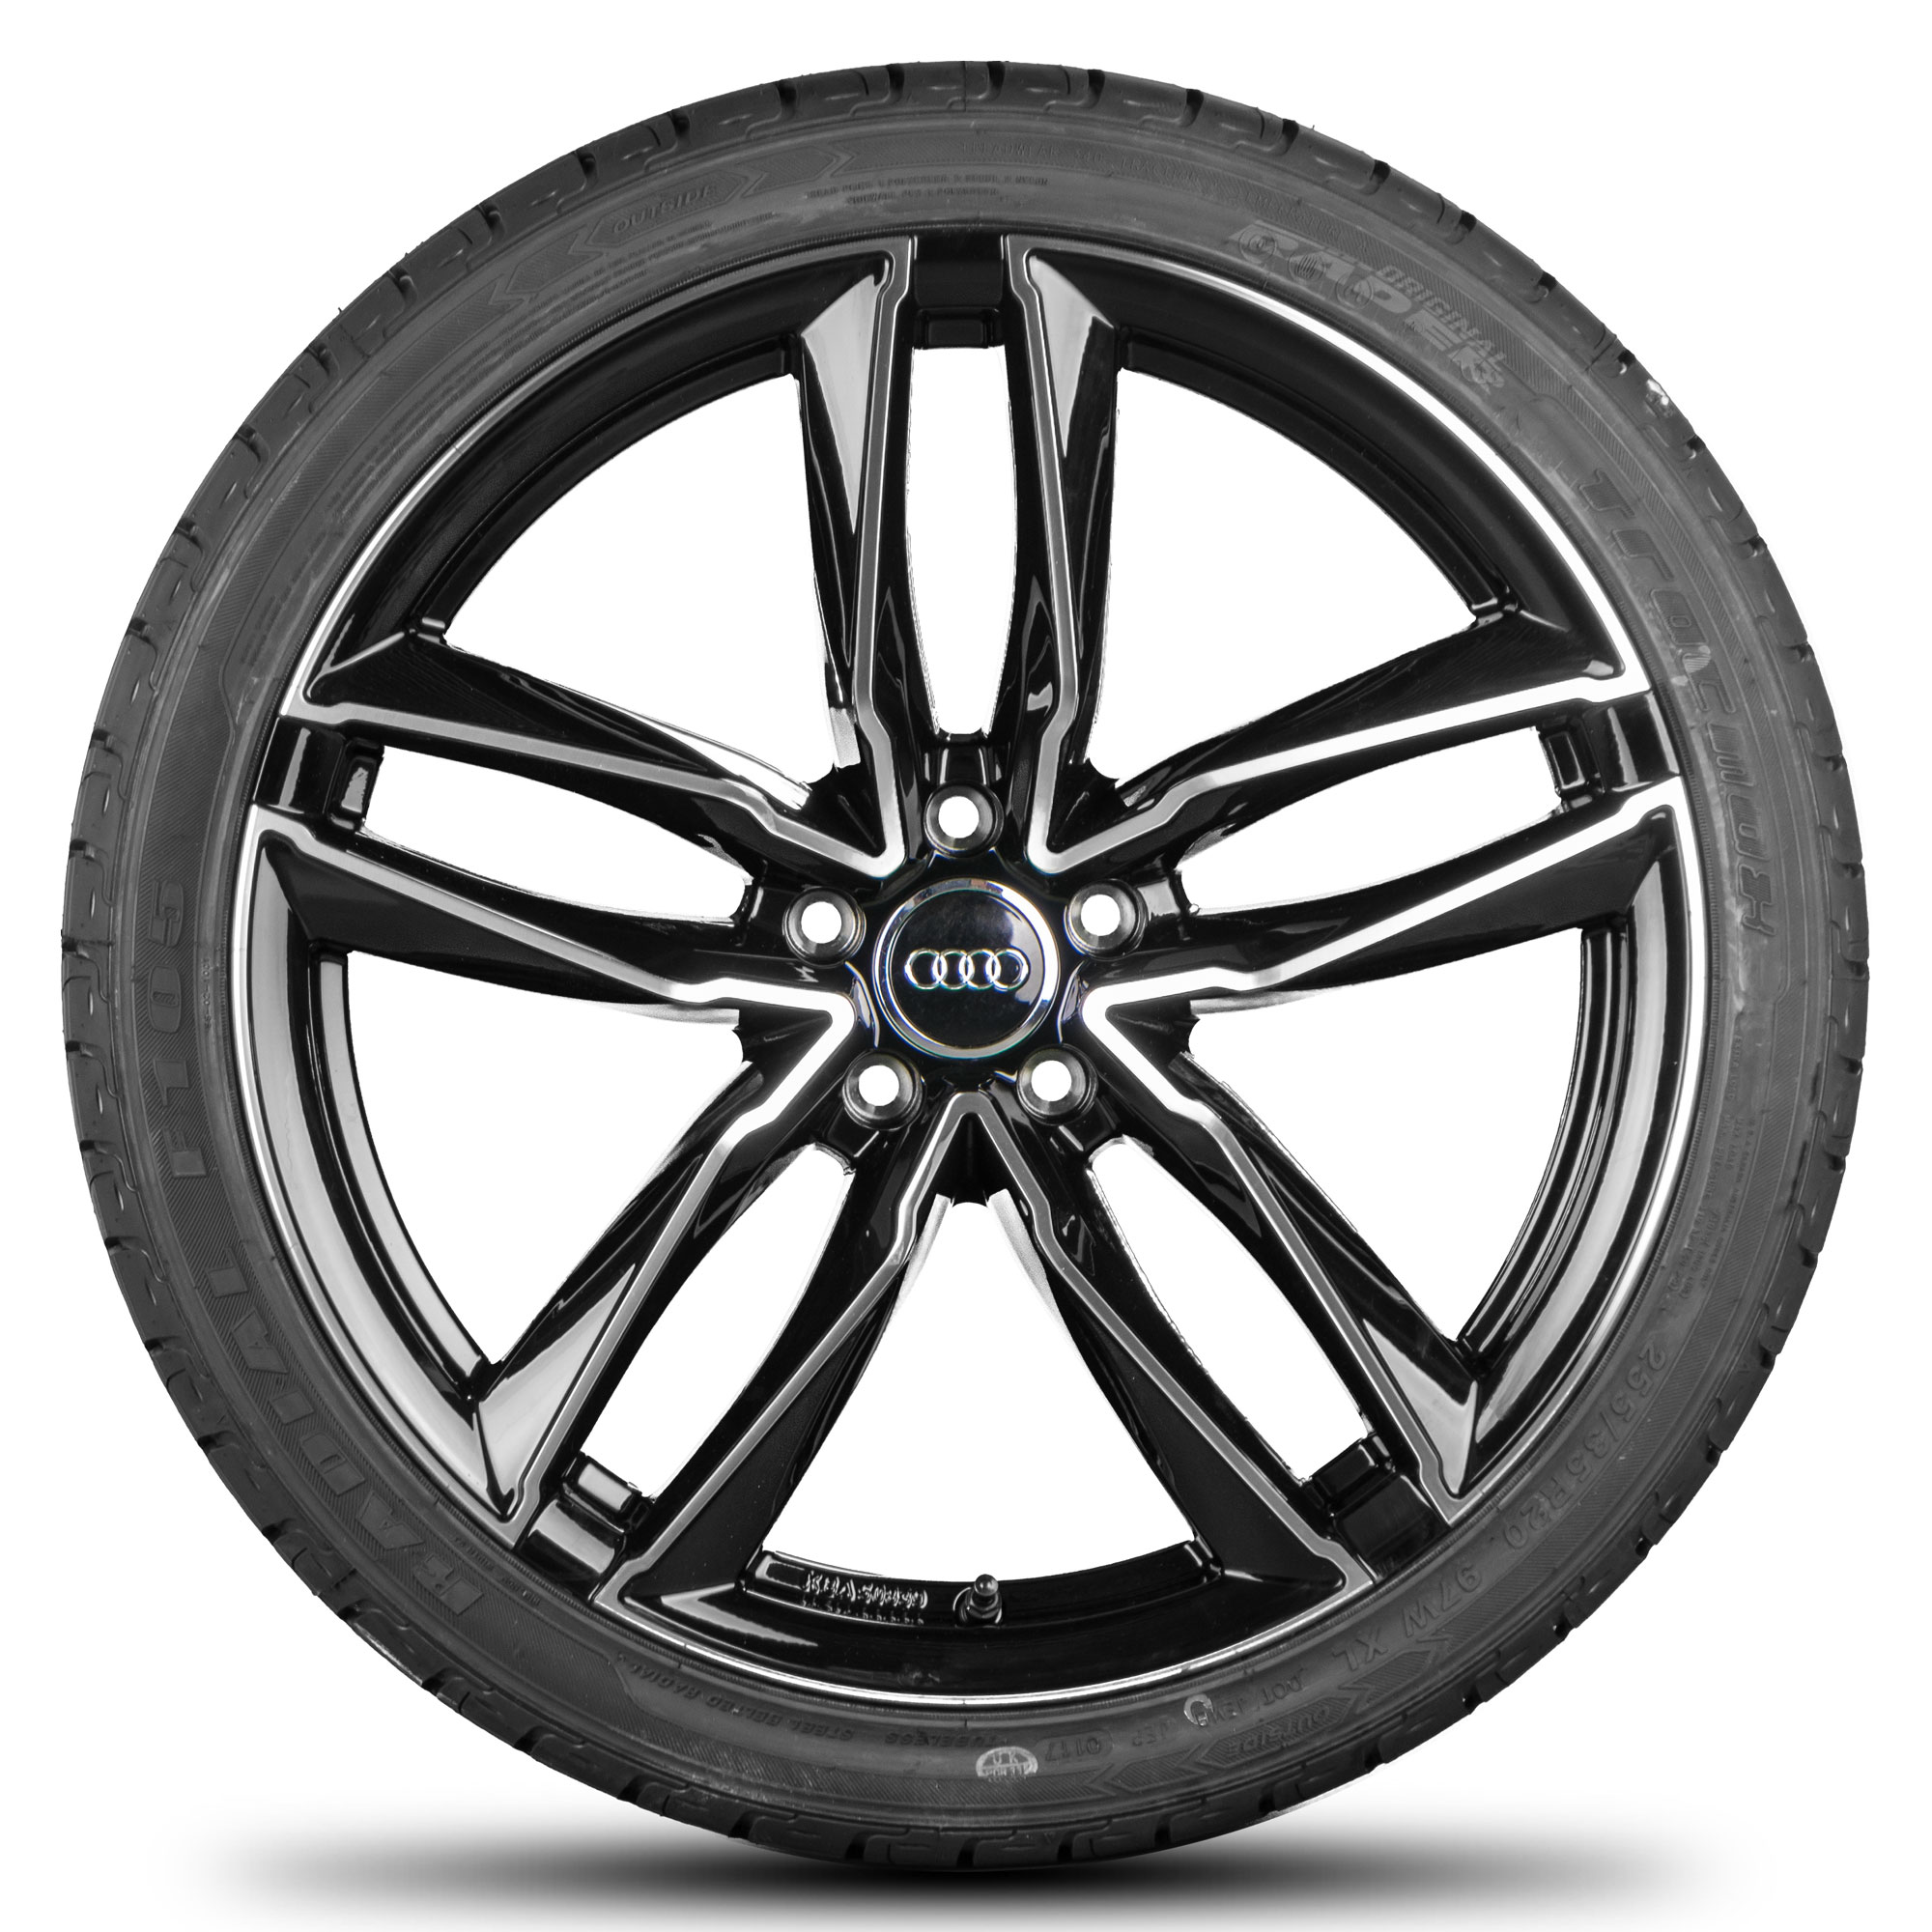 19 Inch Alloy Wheels For Audi A3 8v A4 S4 A5 S5 A6 A7 A8 Q3 Tt Rims S Line Motec Hersteller Audi